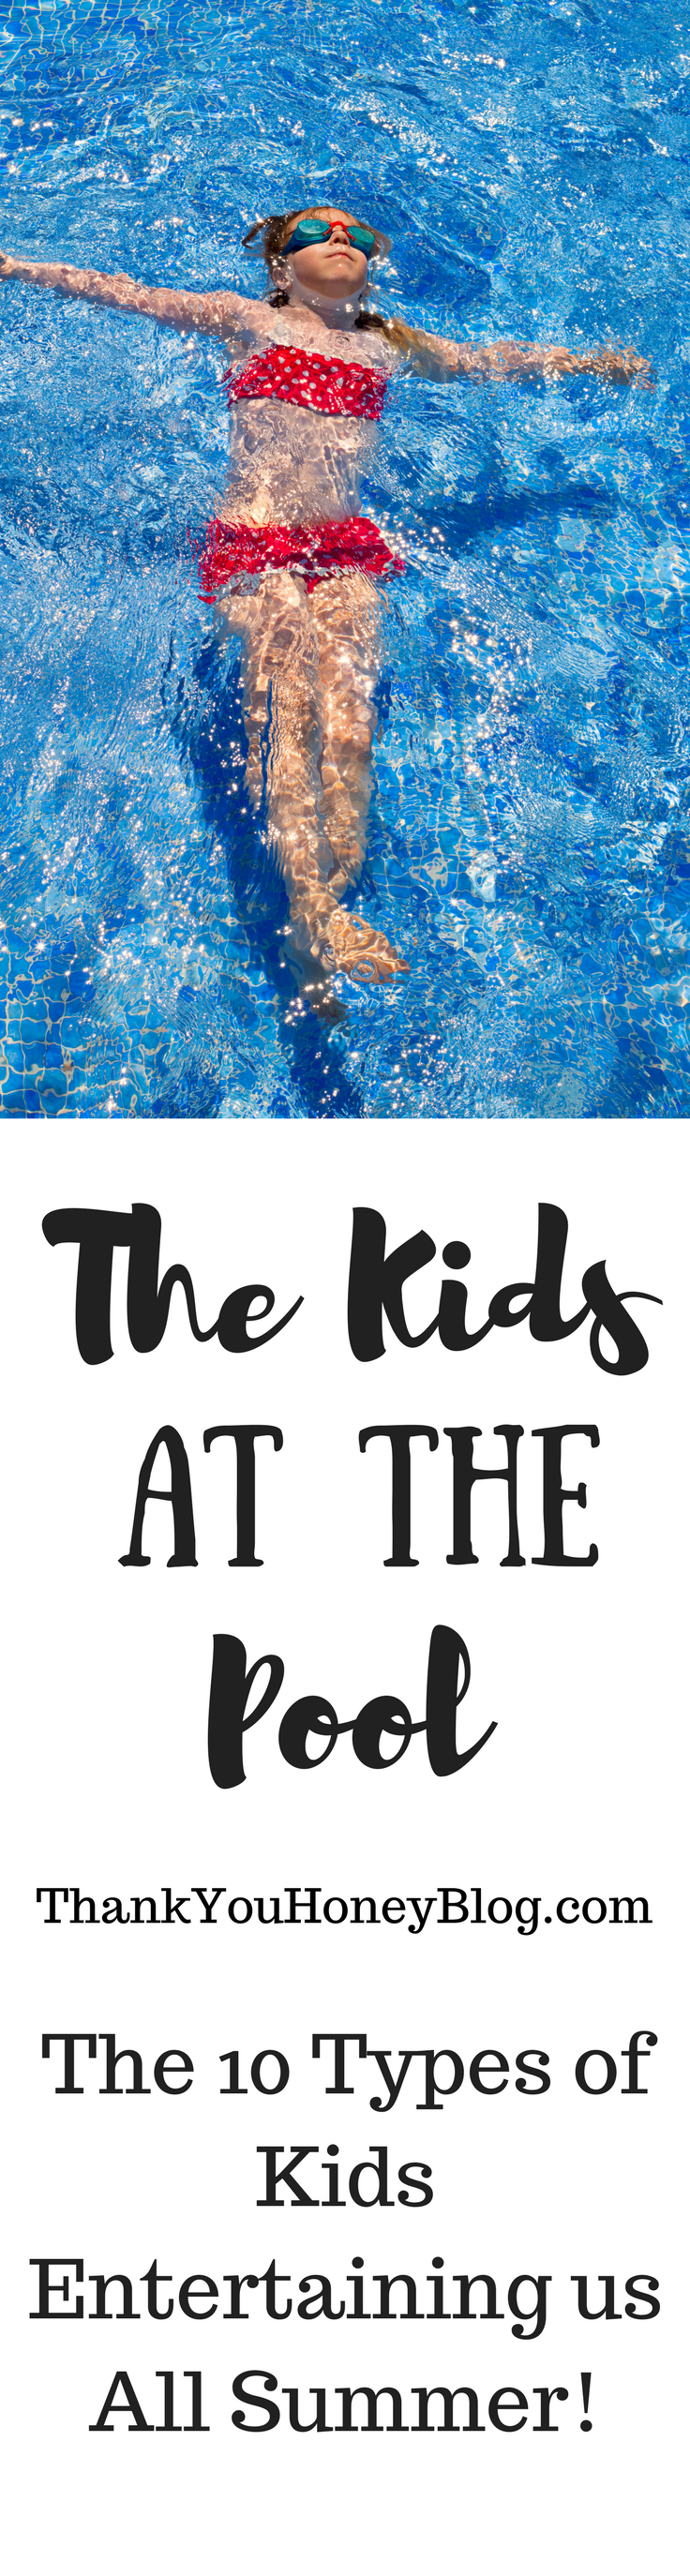 The Kids at the Pool, Funny, Funny Kid Moments, Humor, Kids, laugh, Pool, Pool Club, Swimming Pool, Summer, Summer Break, Vacation, Memories